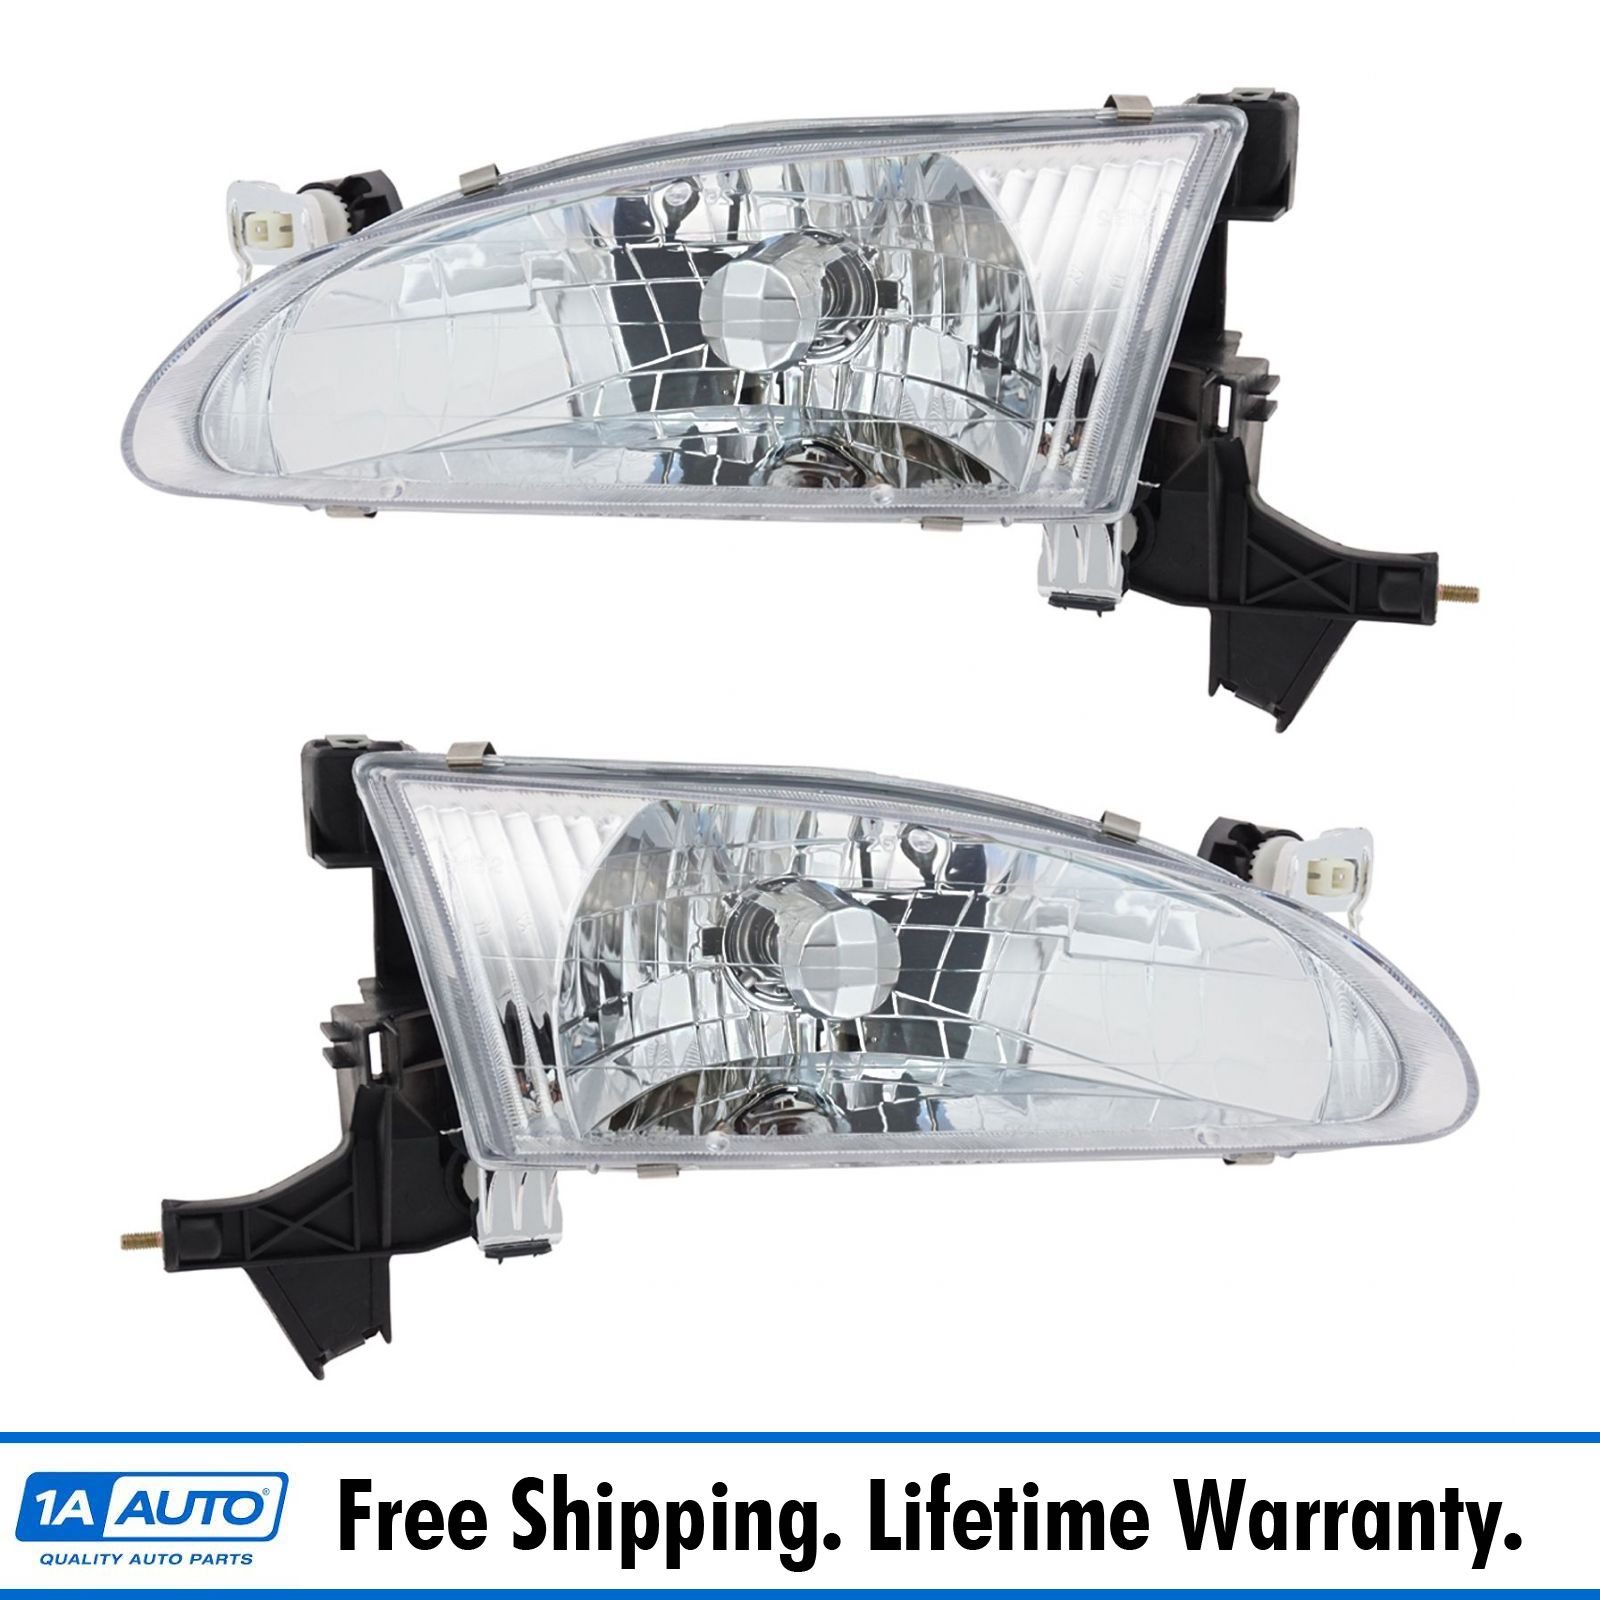 Details About Headlights Headlamps Left Right Pair Set New For 98 00 Toyota Corolla